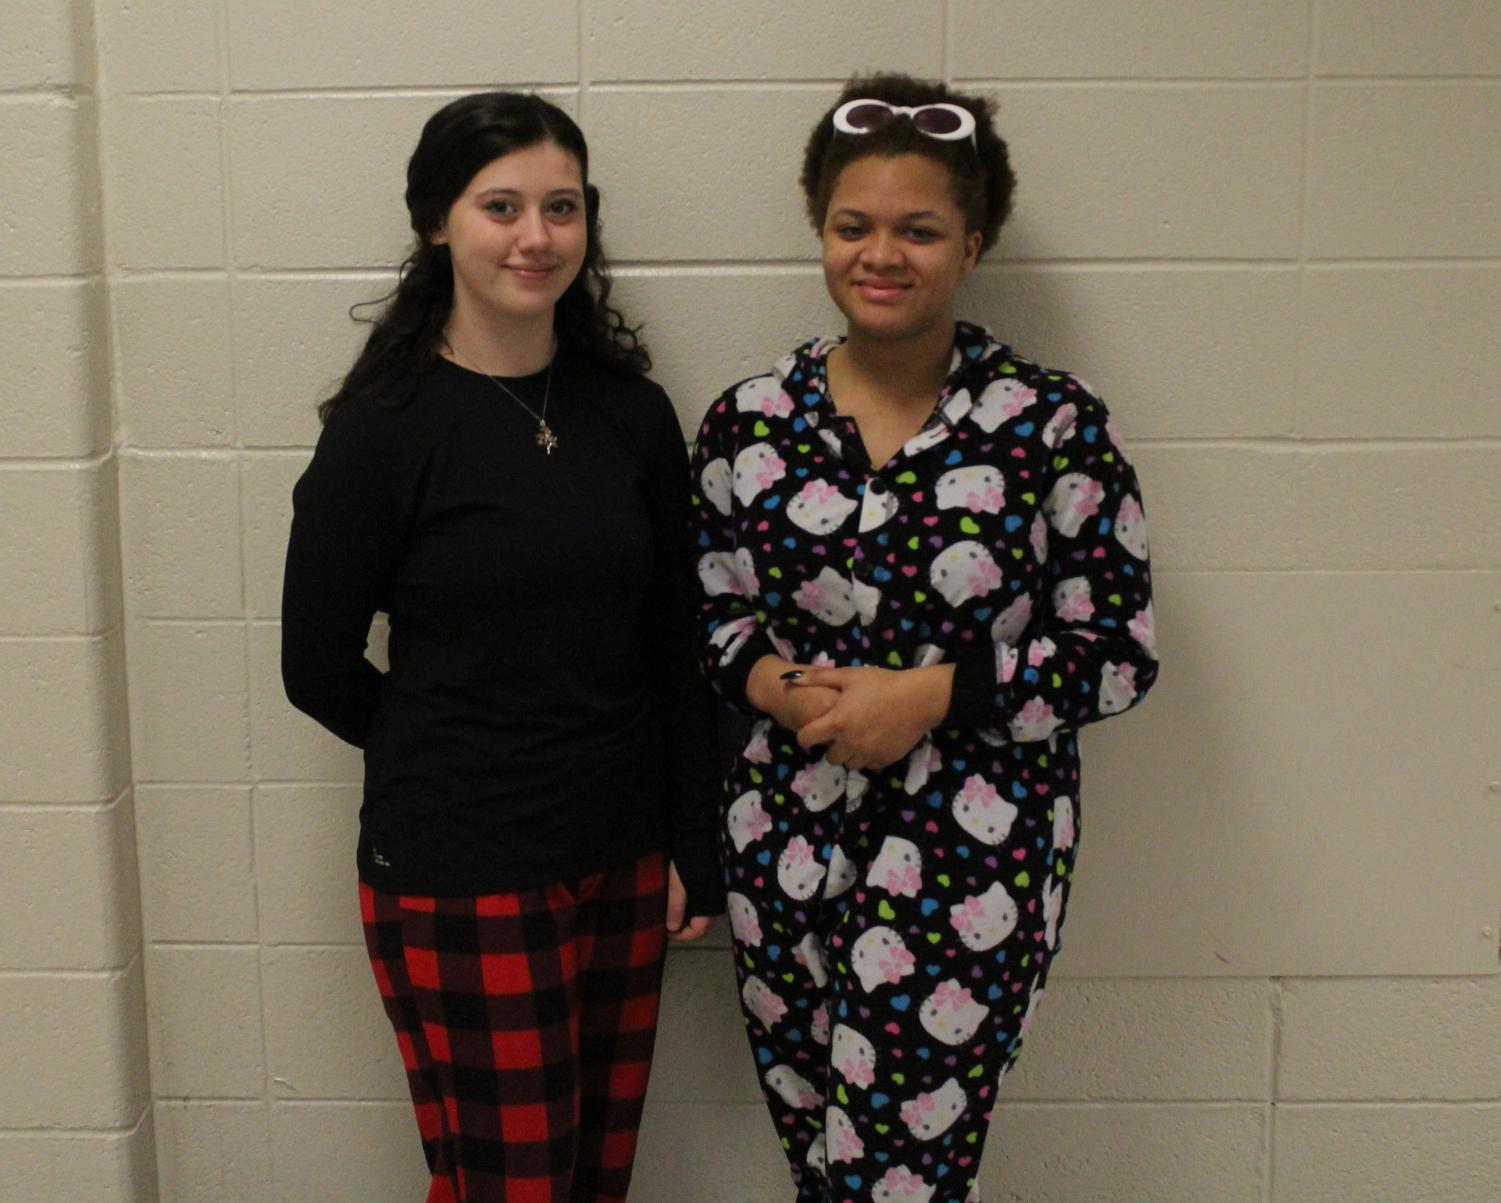 """NC students celebrate their Hoopcoming week as they dressed comfortably against the wet and rainy day in their pajamas . They support their basketball team while feeling comfy. """"Today is pajama day, so I decided to participate. It's just fun because it's nice to be all cozy at school,"""" sophomore Lauren Sloan said."""